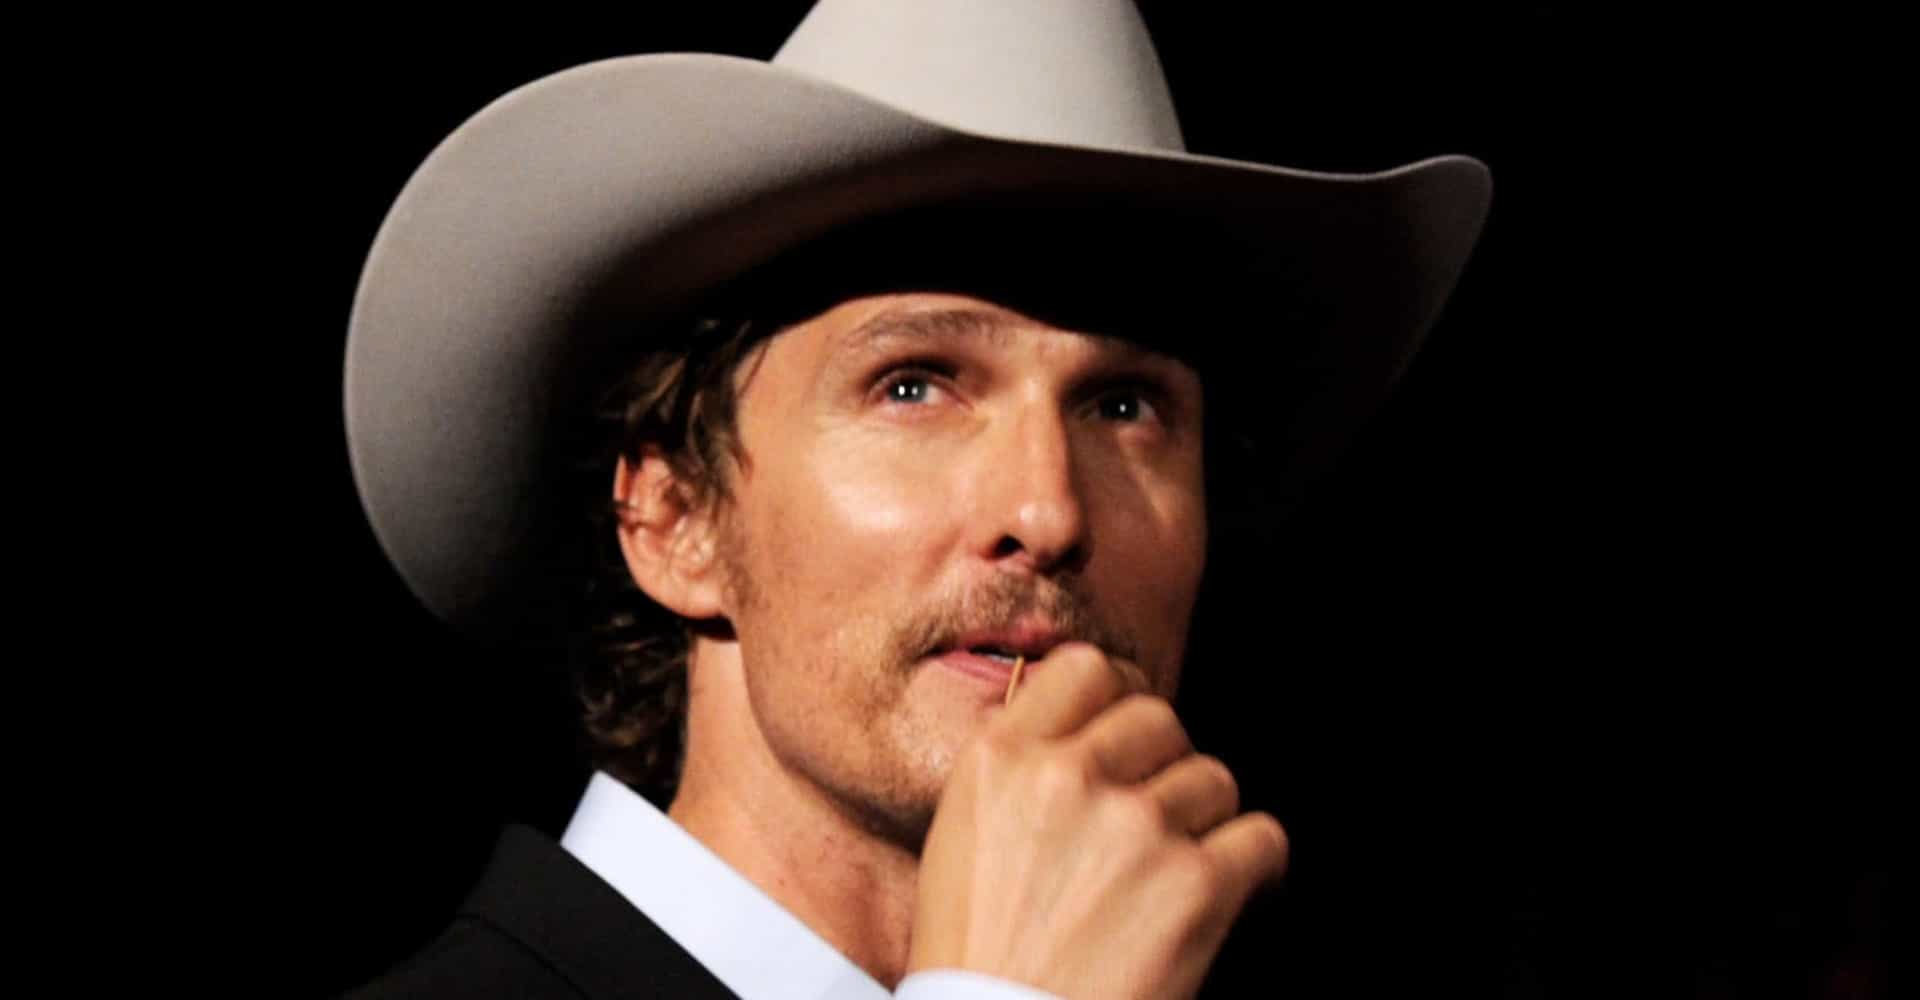 A guide to Matthew McConaughey: the chameleon of cinema